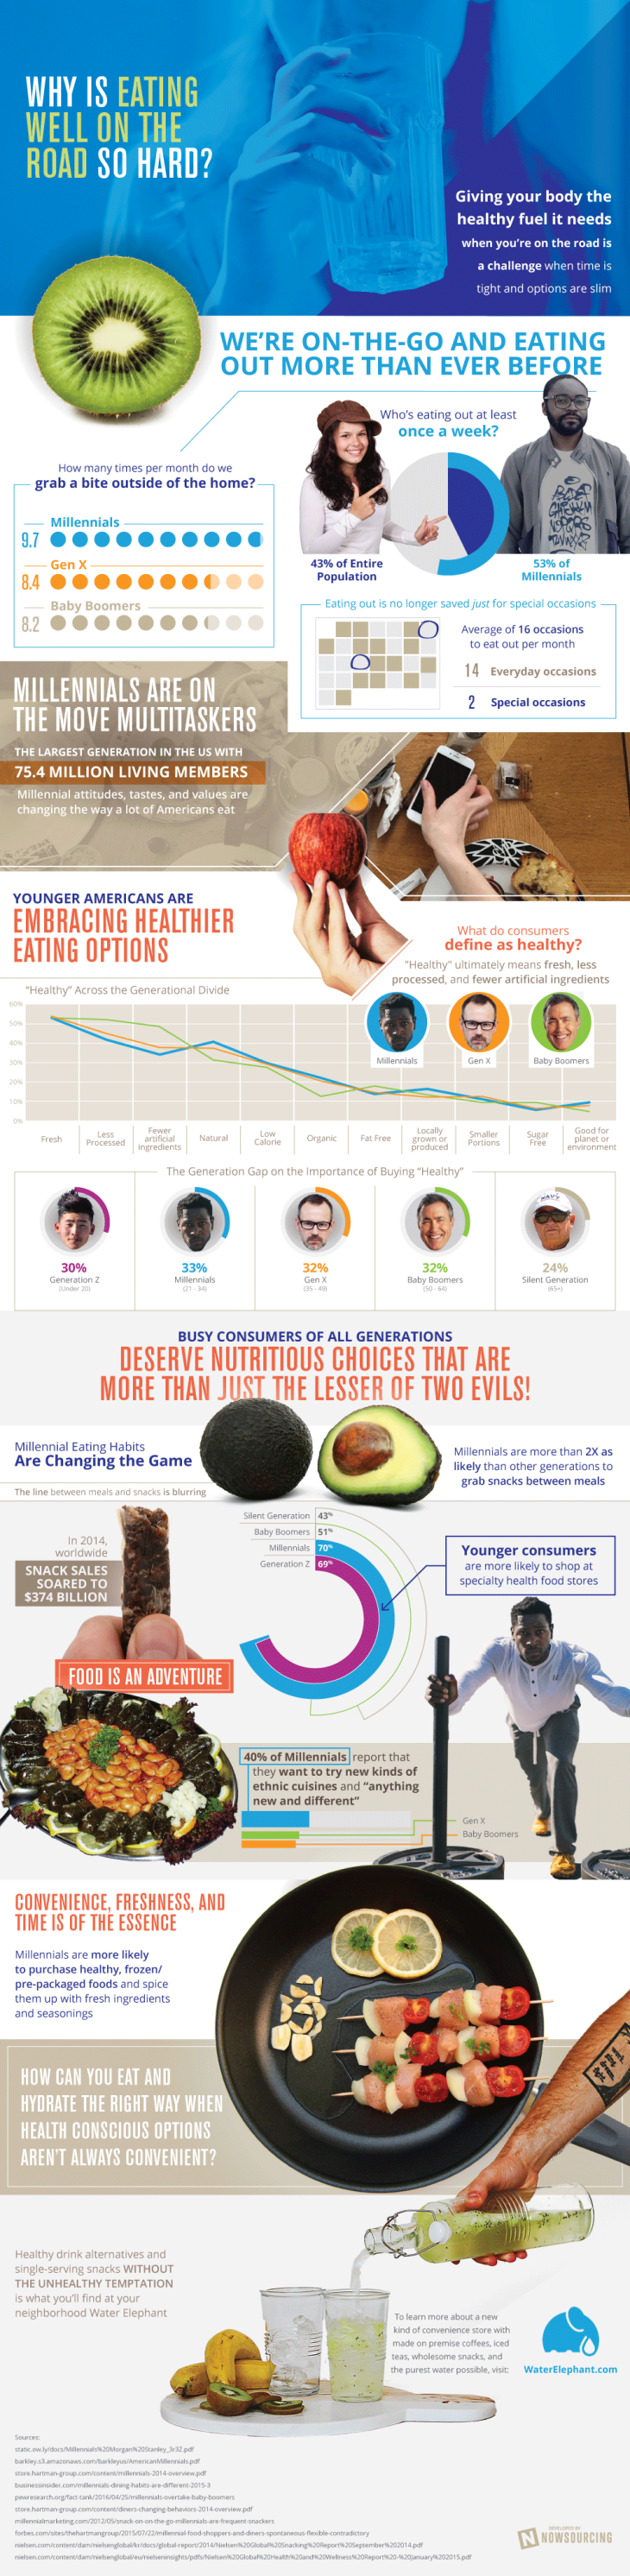 water-elephant2 how to eat healthy while you're on the road infographic CES 2017